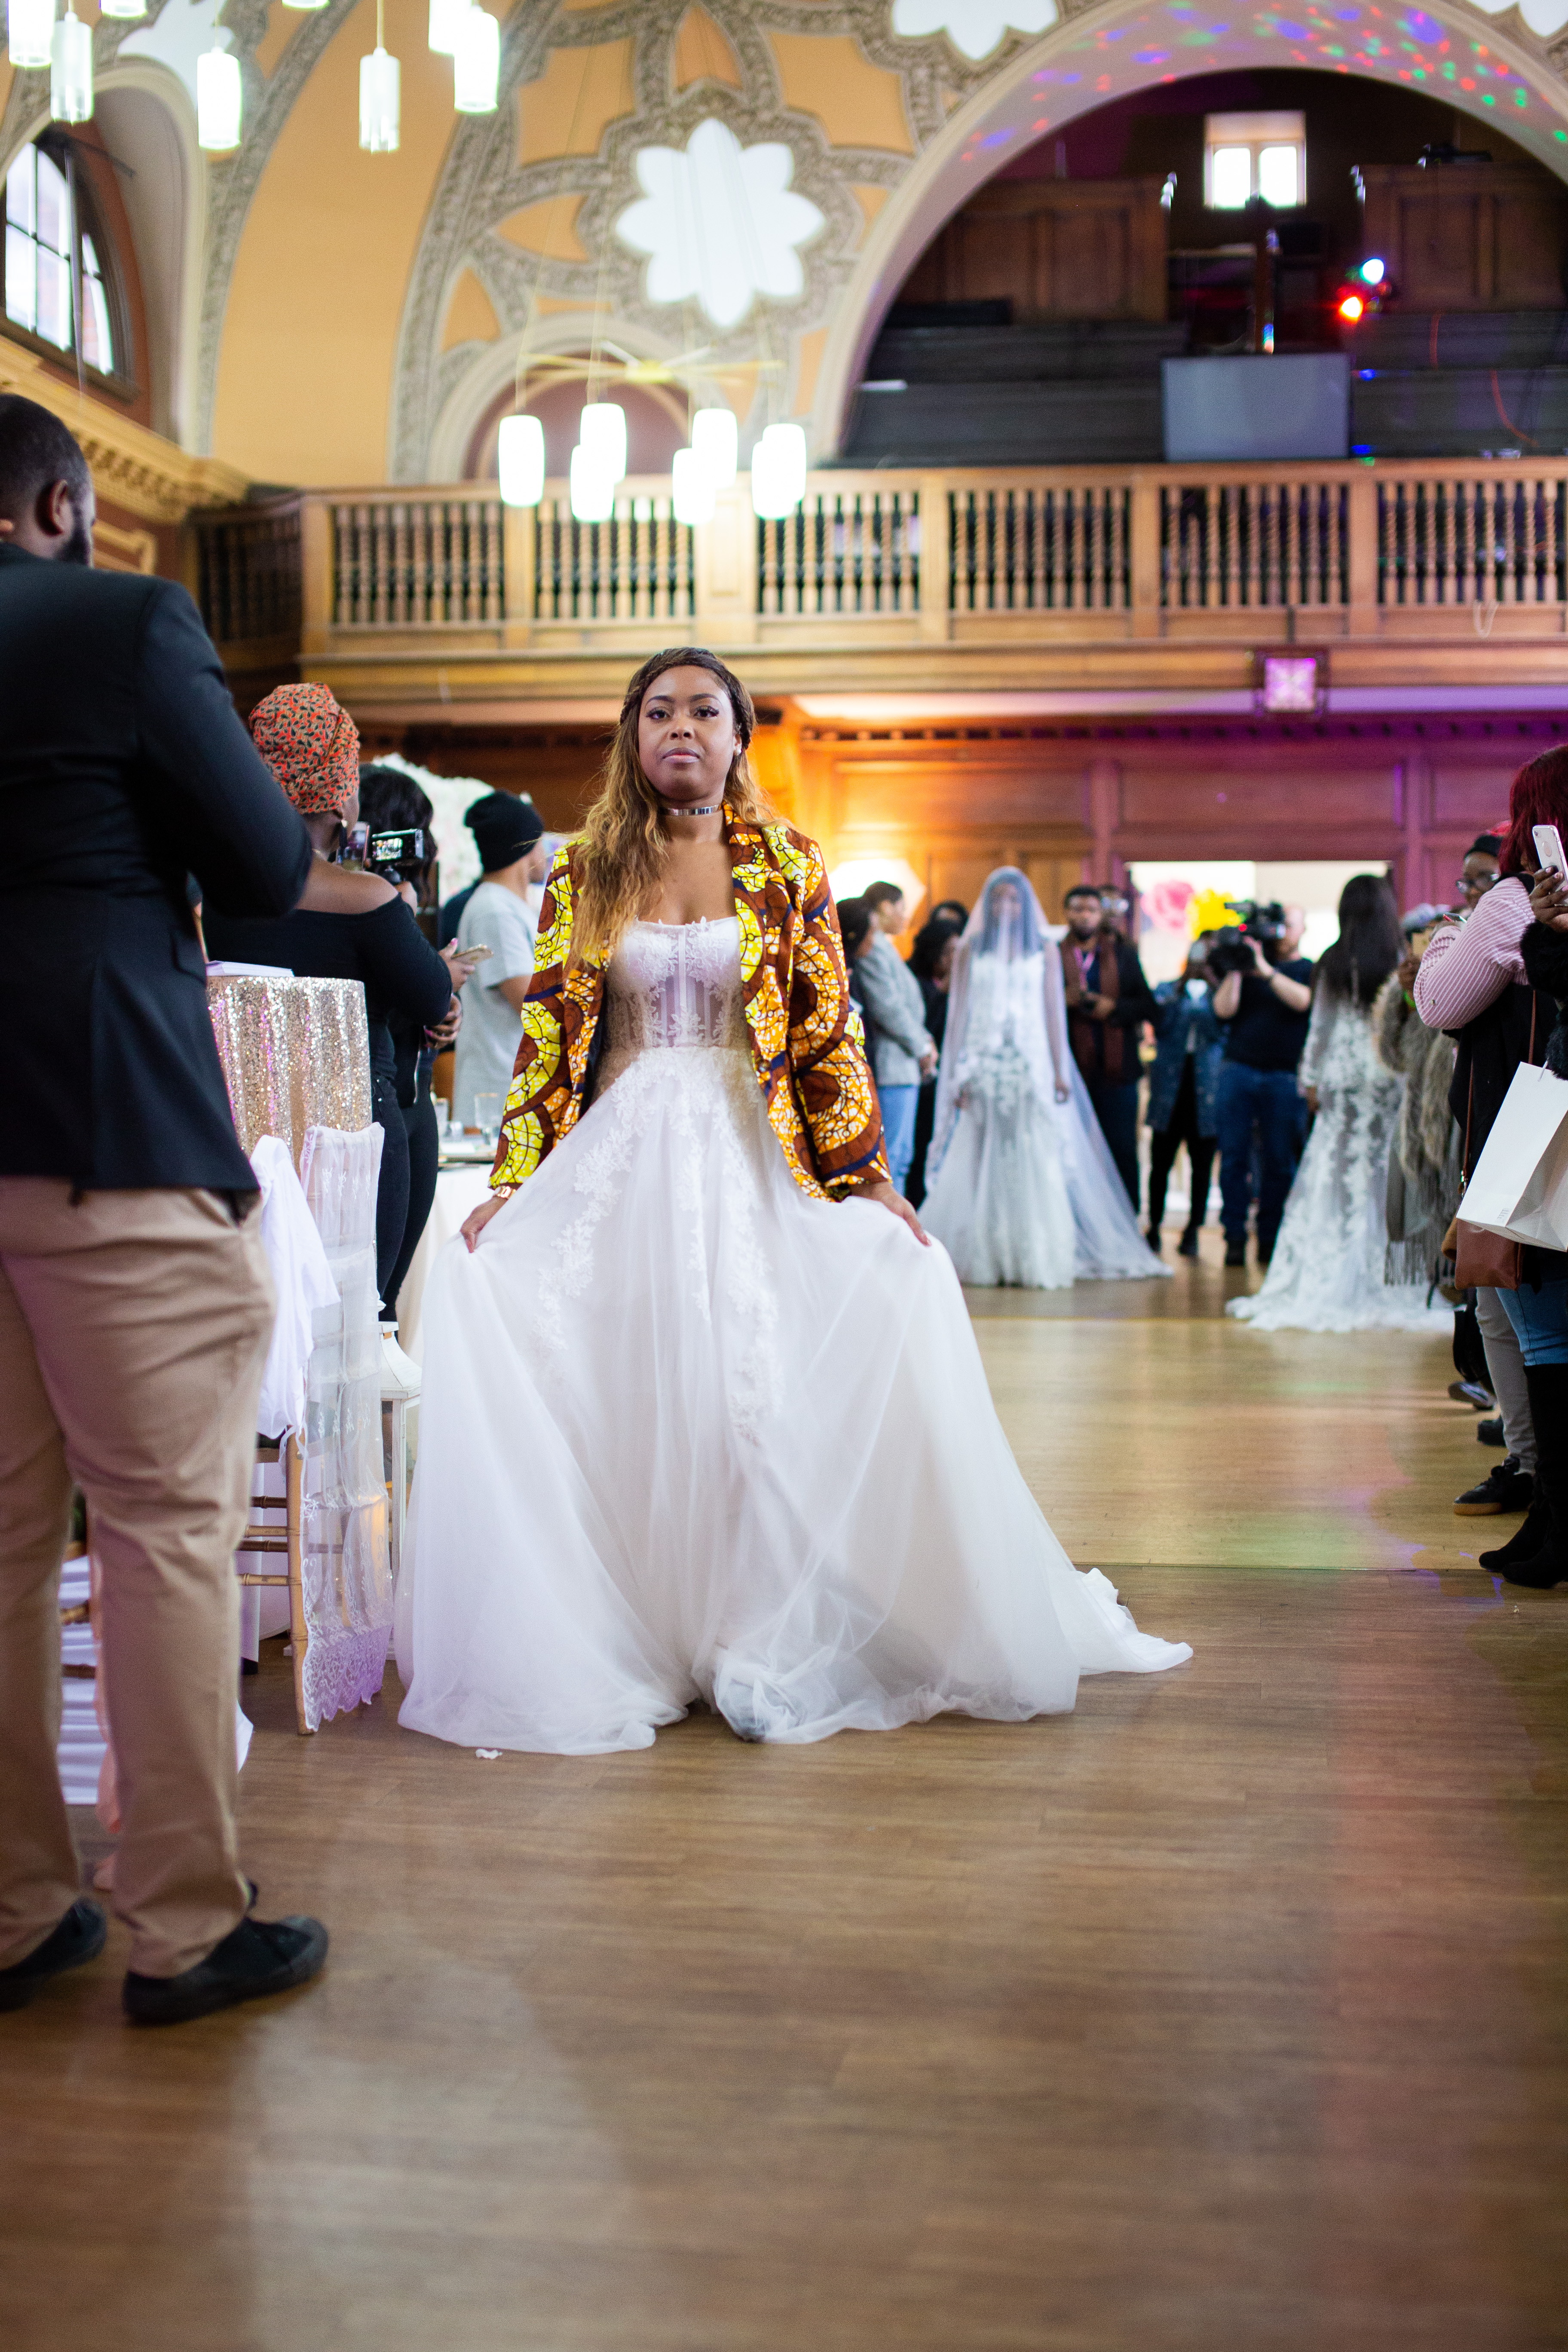 My-Dream-Wedding-Fair-London-Black-African-Caribbean-Bridal-Show-00209